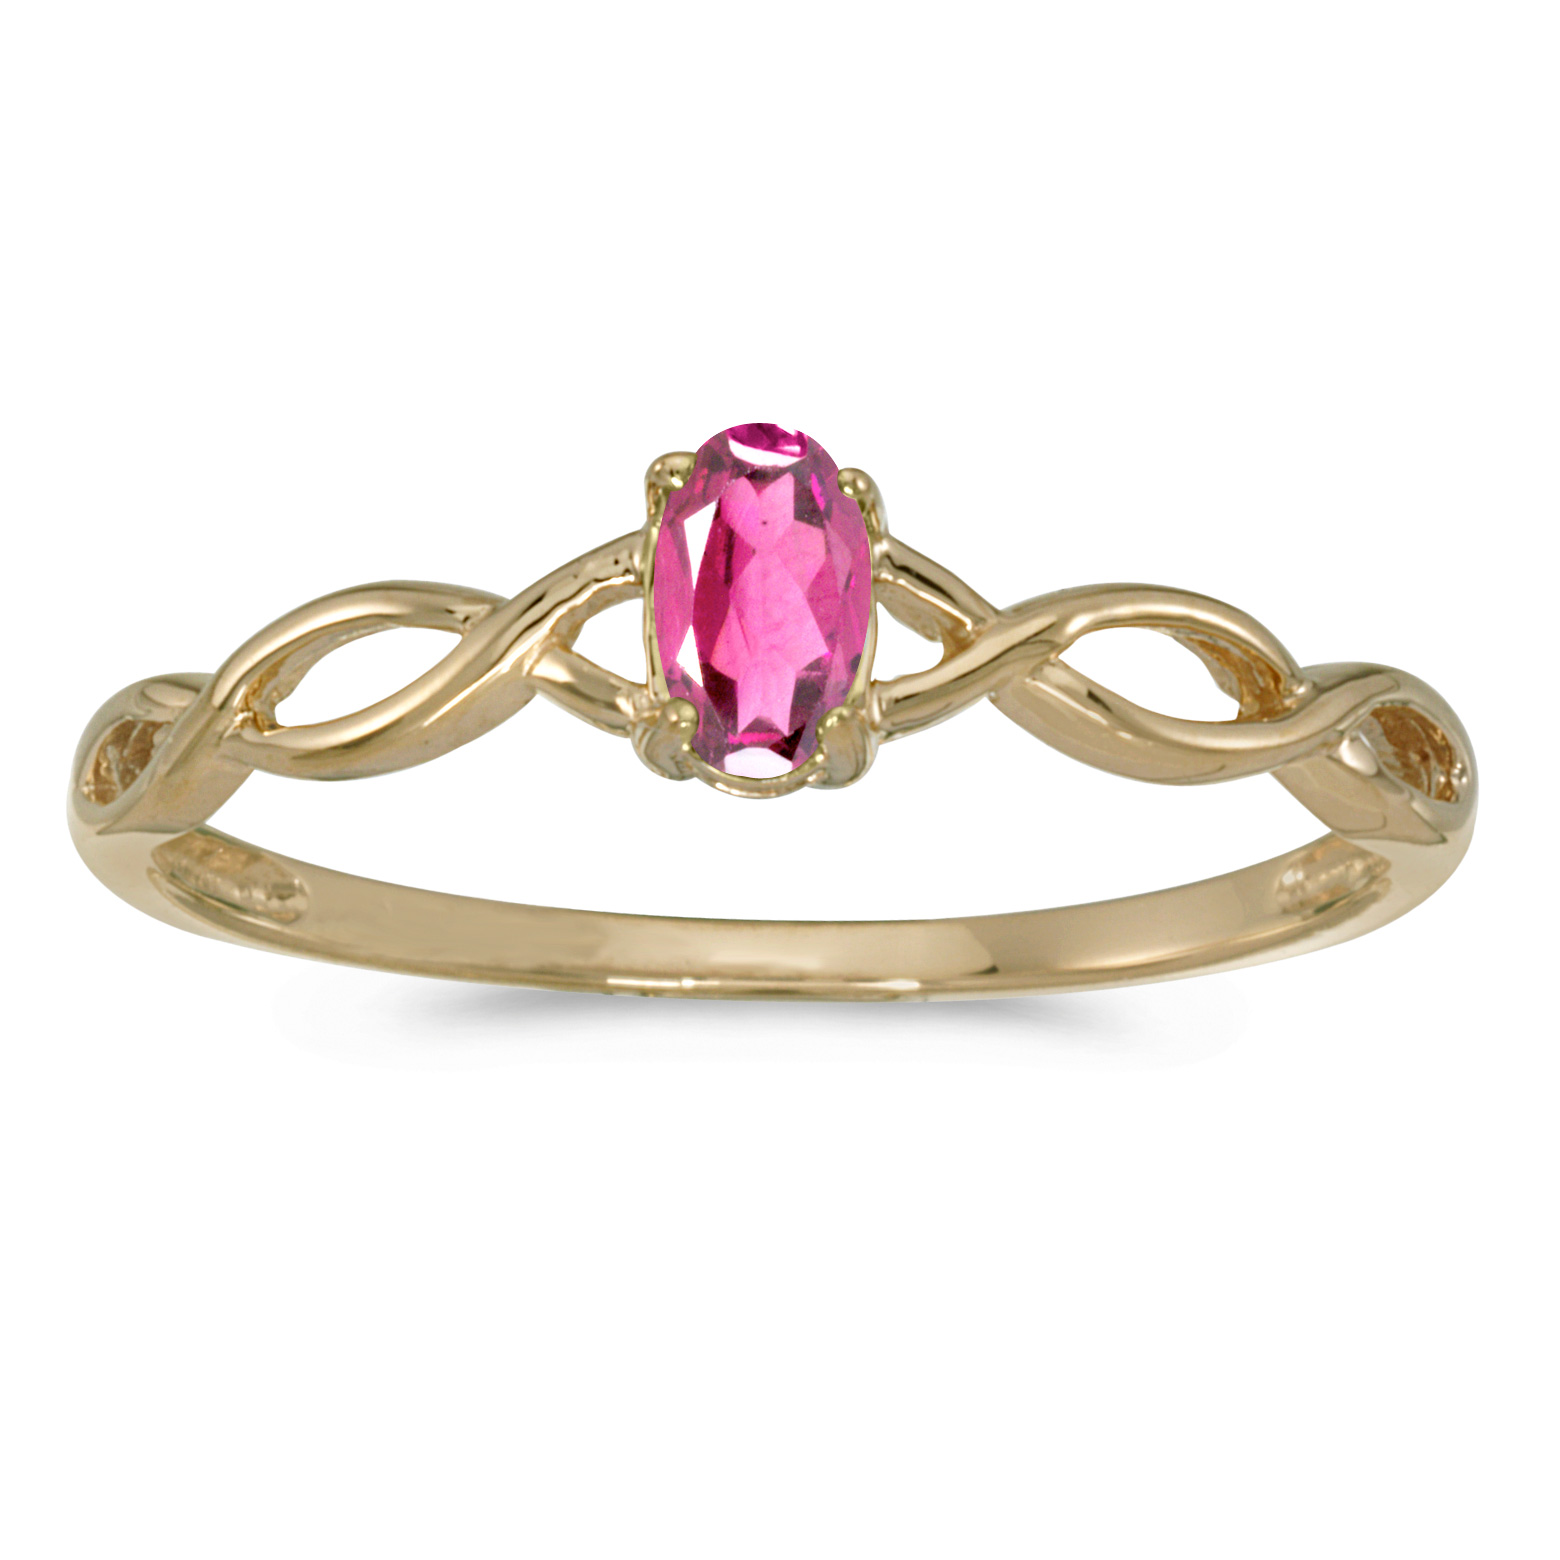 14k Yellow Gold Oval Pink Topaz Ring by